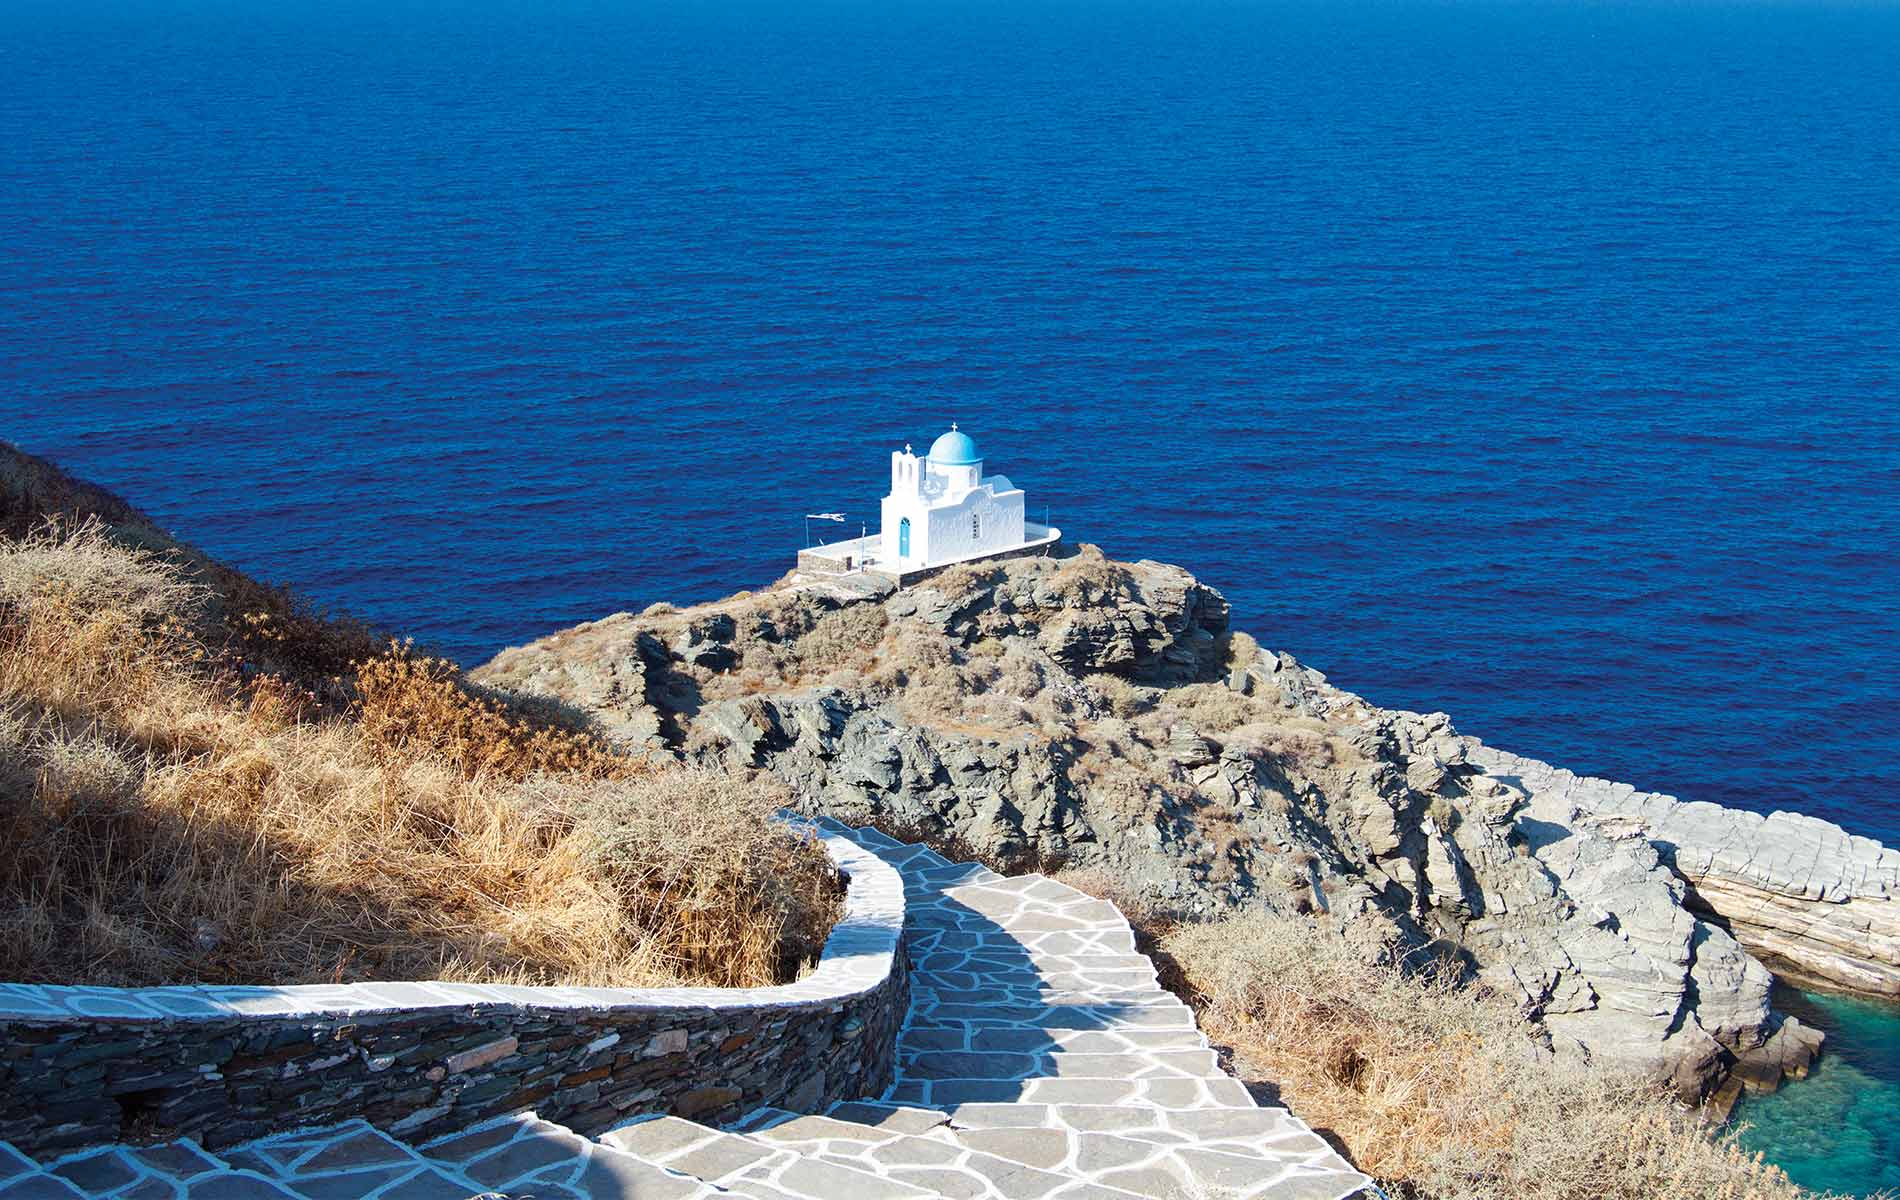 House on a cliff in Greece near the ocean